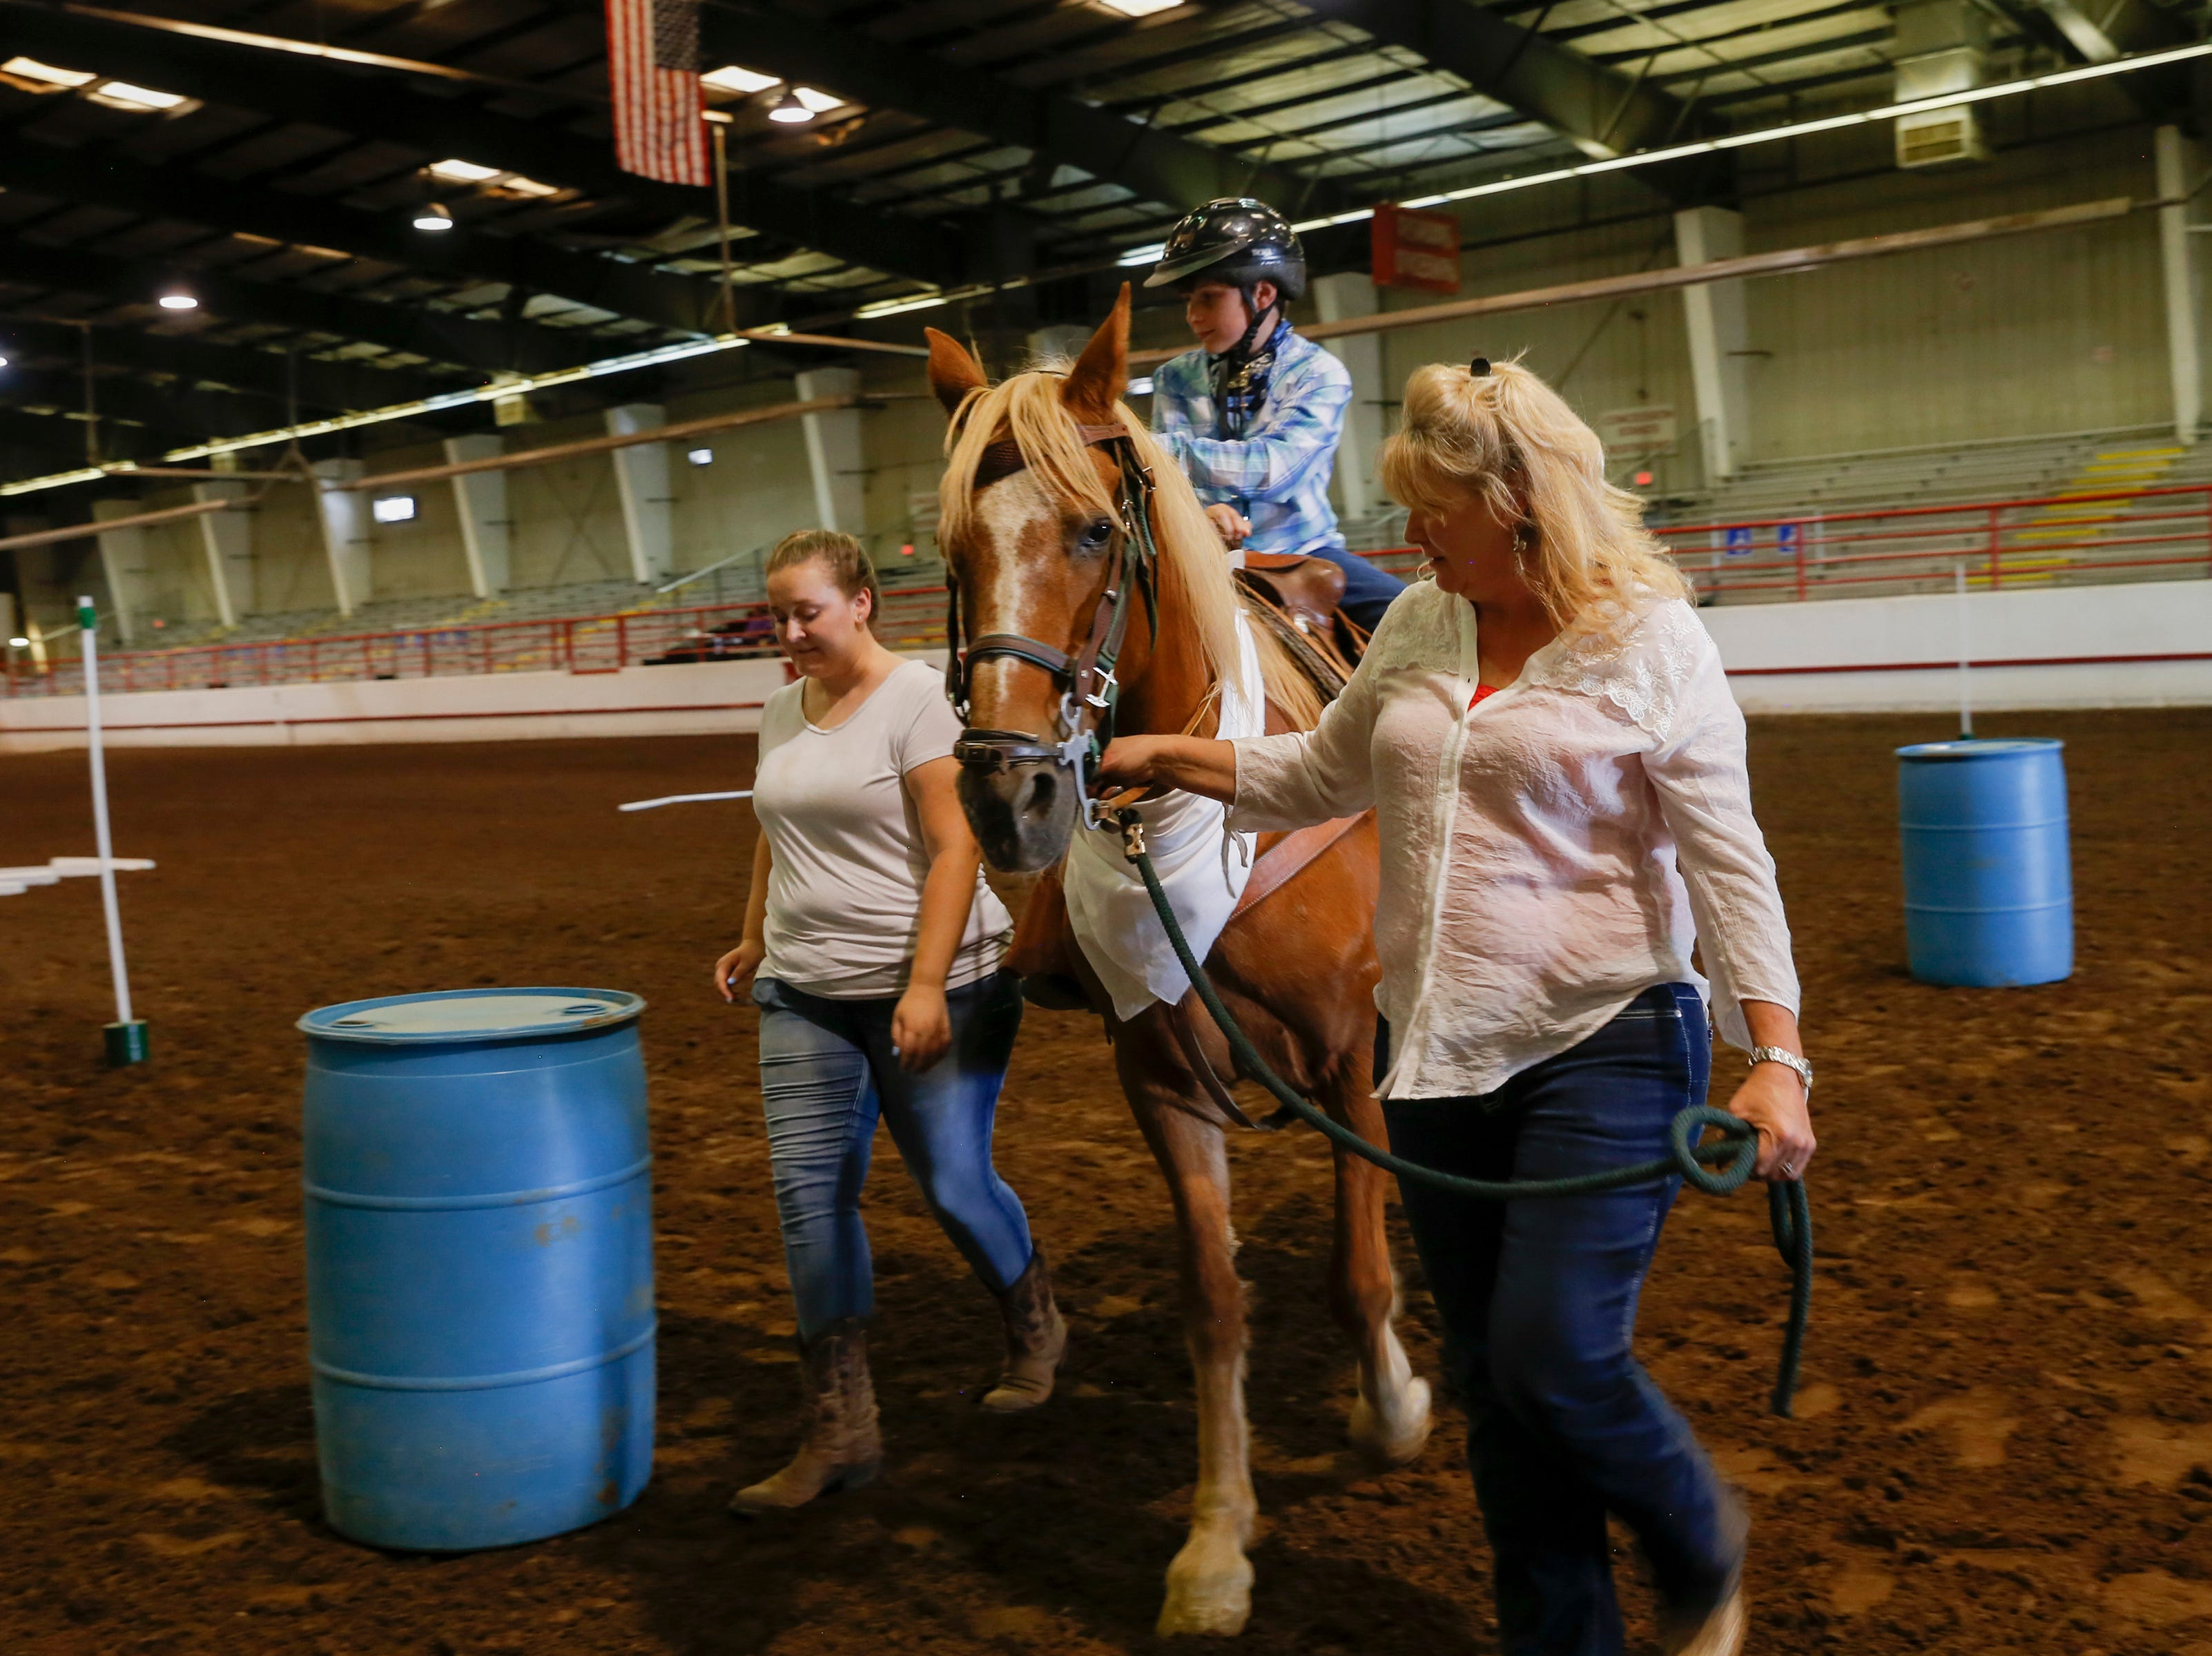 Nathanael Muller rides Savvy around barrels Wednesday, Aug. 15. 2018 during an equestrian show for people with disabilities at the San Juan County Fair in Memorial Coliseum at McGee Park in Farmington